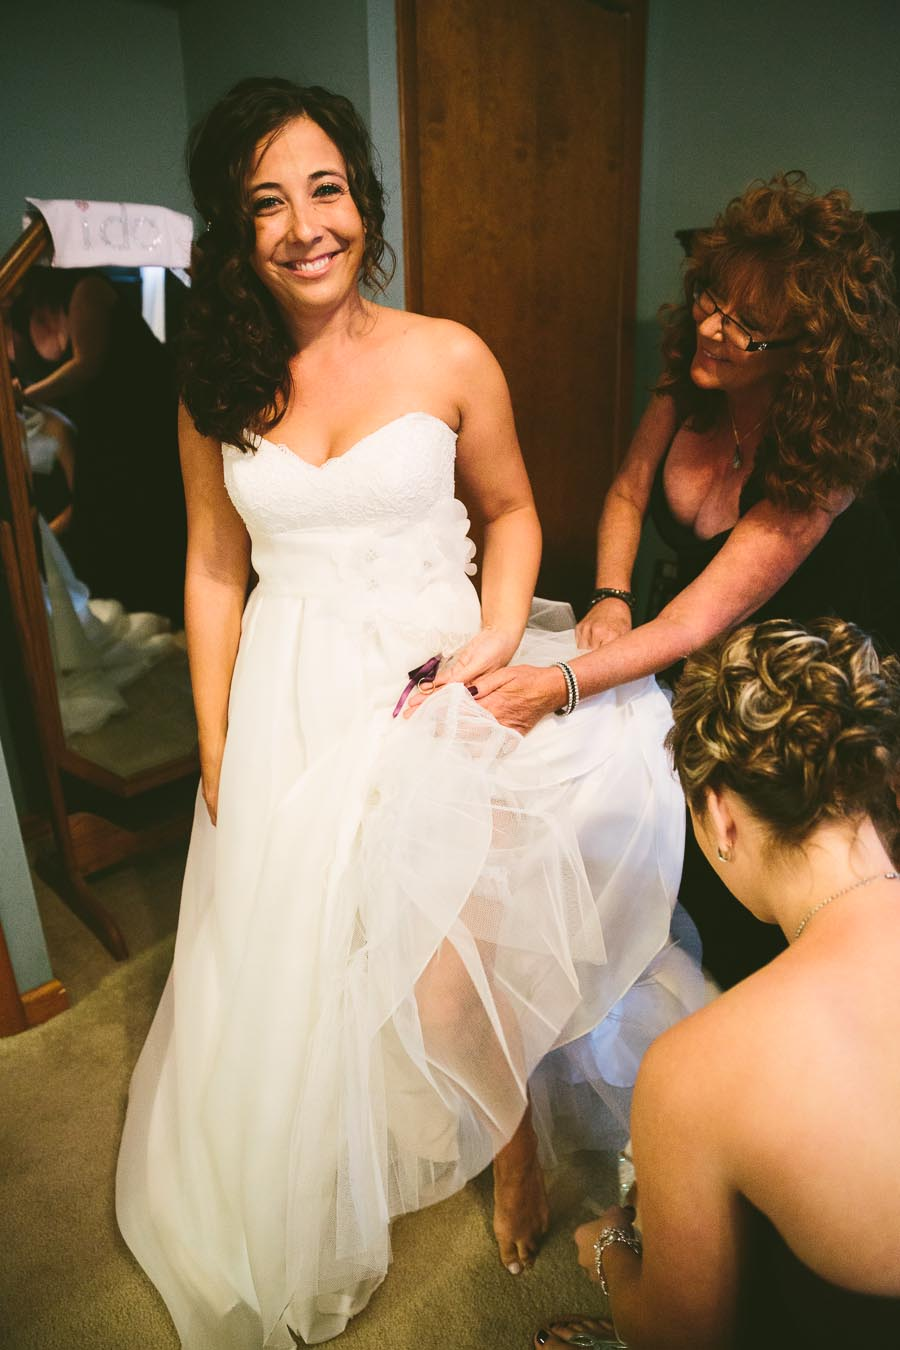 north-olmsted-ohio-wedding-photography-st-clarence-10.jpg